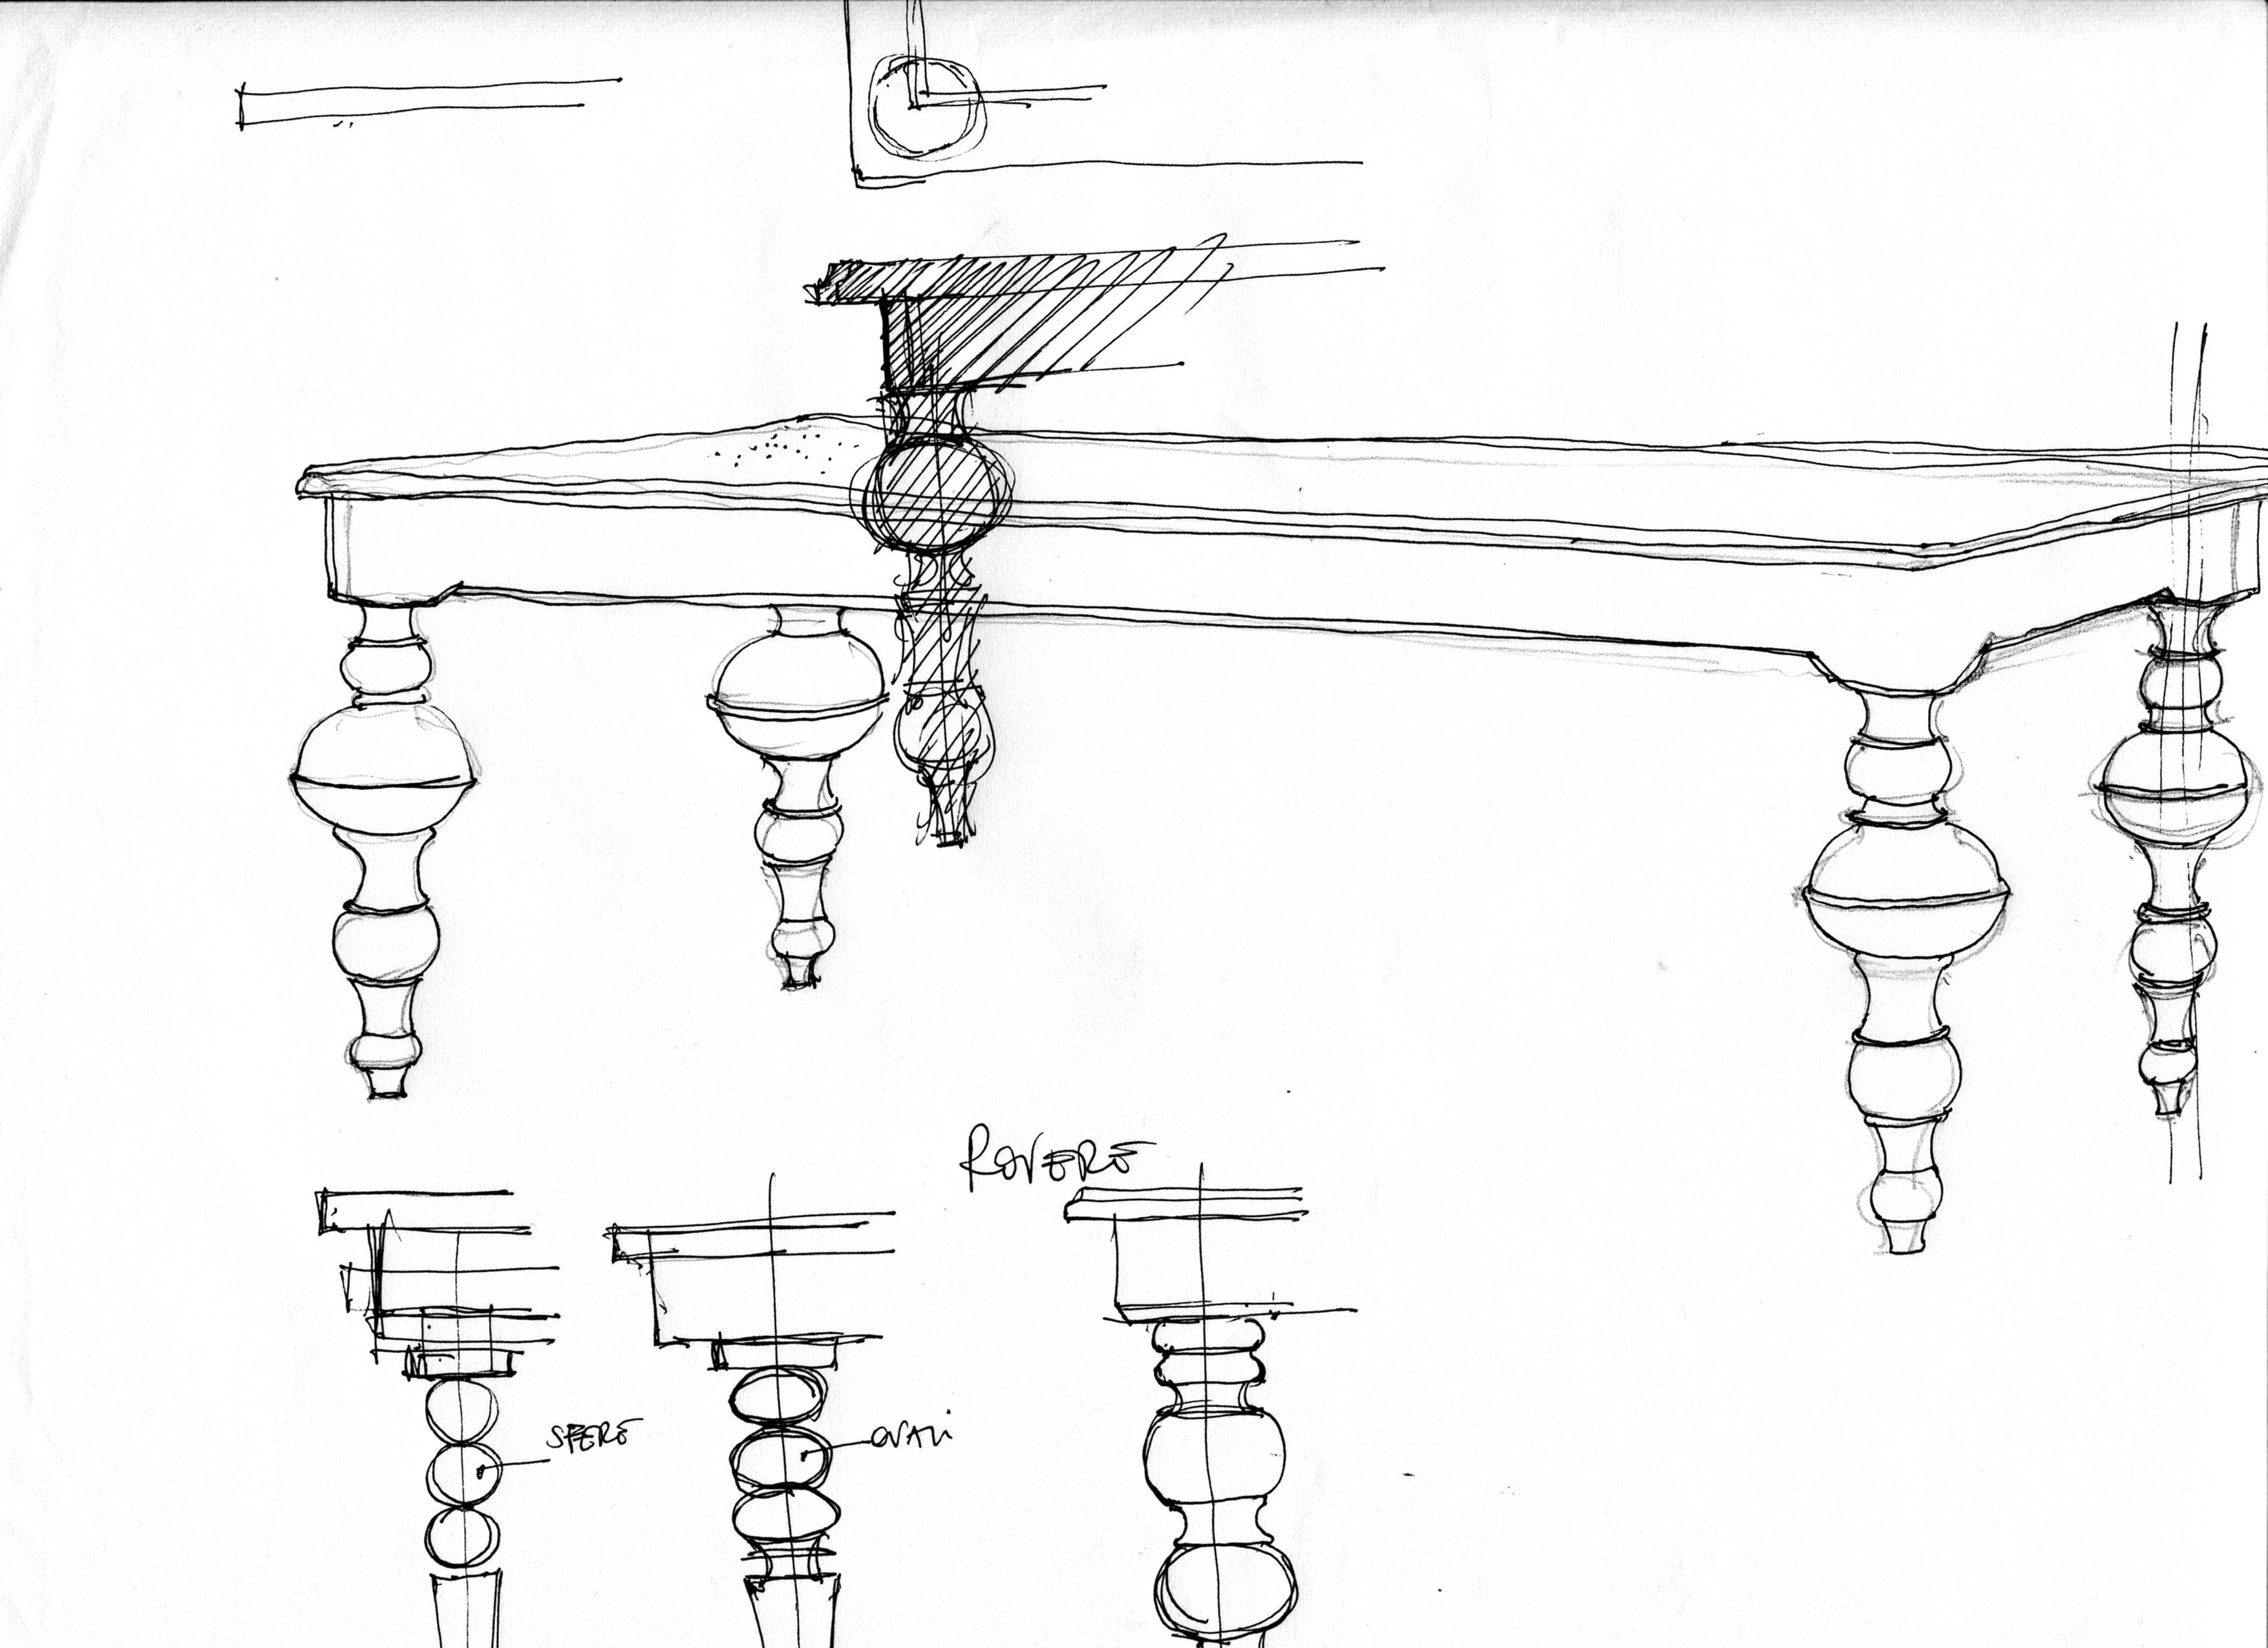 table (sketch by pier giuseppe fedele architect)